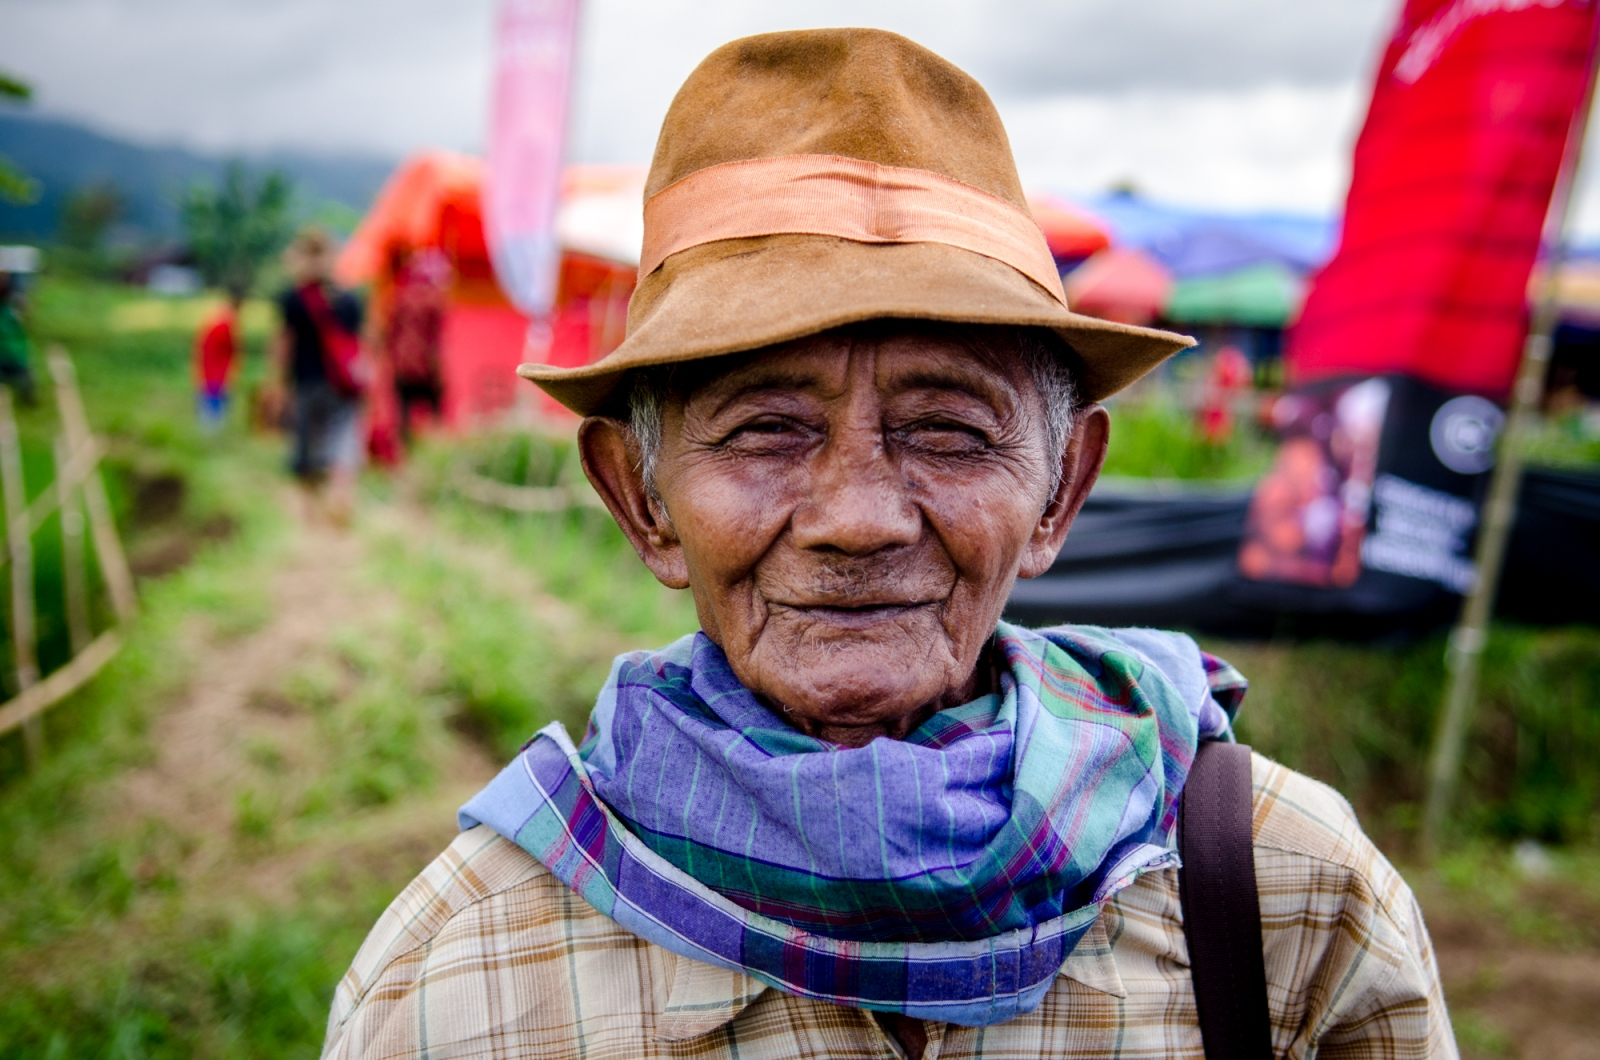 People come from many villages within the area to watch the races at Pacu Jawi. The location shifts kampungs (neighborhoods) each harvest season, using a partially drained paddy for the races, which incidentally helps to turn the soil before planting the next seasons seeds. This older Indonesian man has come to watch the skilled jockeys and powerful bulls, mingle with friends and family and, likely, place a couple of bets along the way. The all day event prompts appropriate sun protection, both hats and scarves, as the spectators are fully exposed in the middle of a field just south of Mount Marapi in West Sumatra, Indonesia.